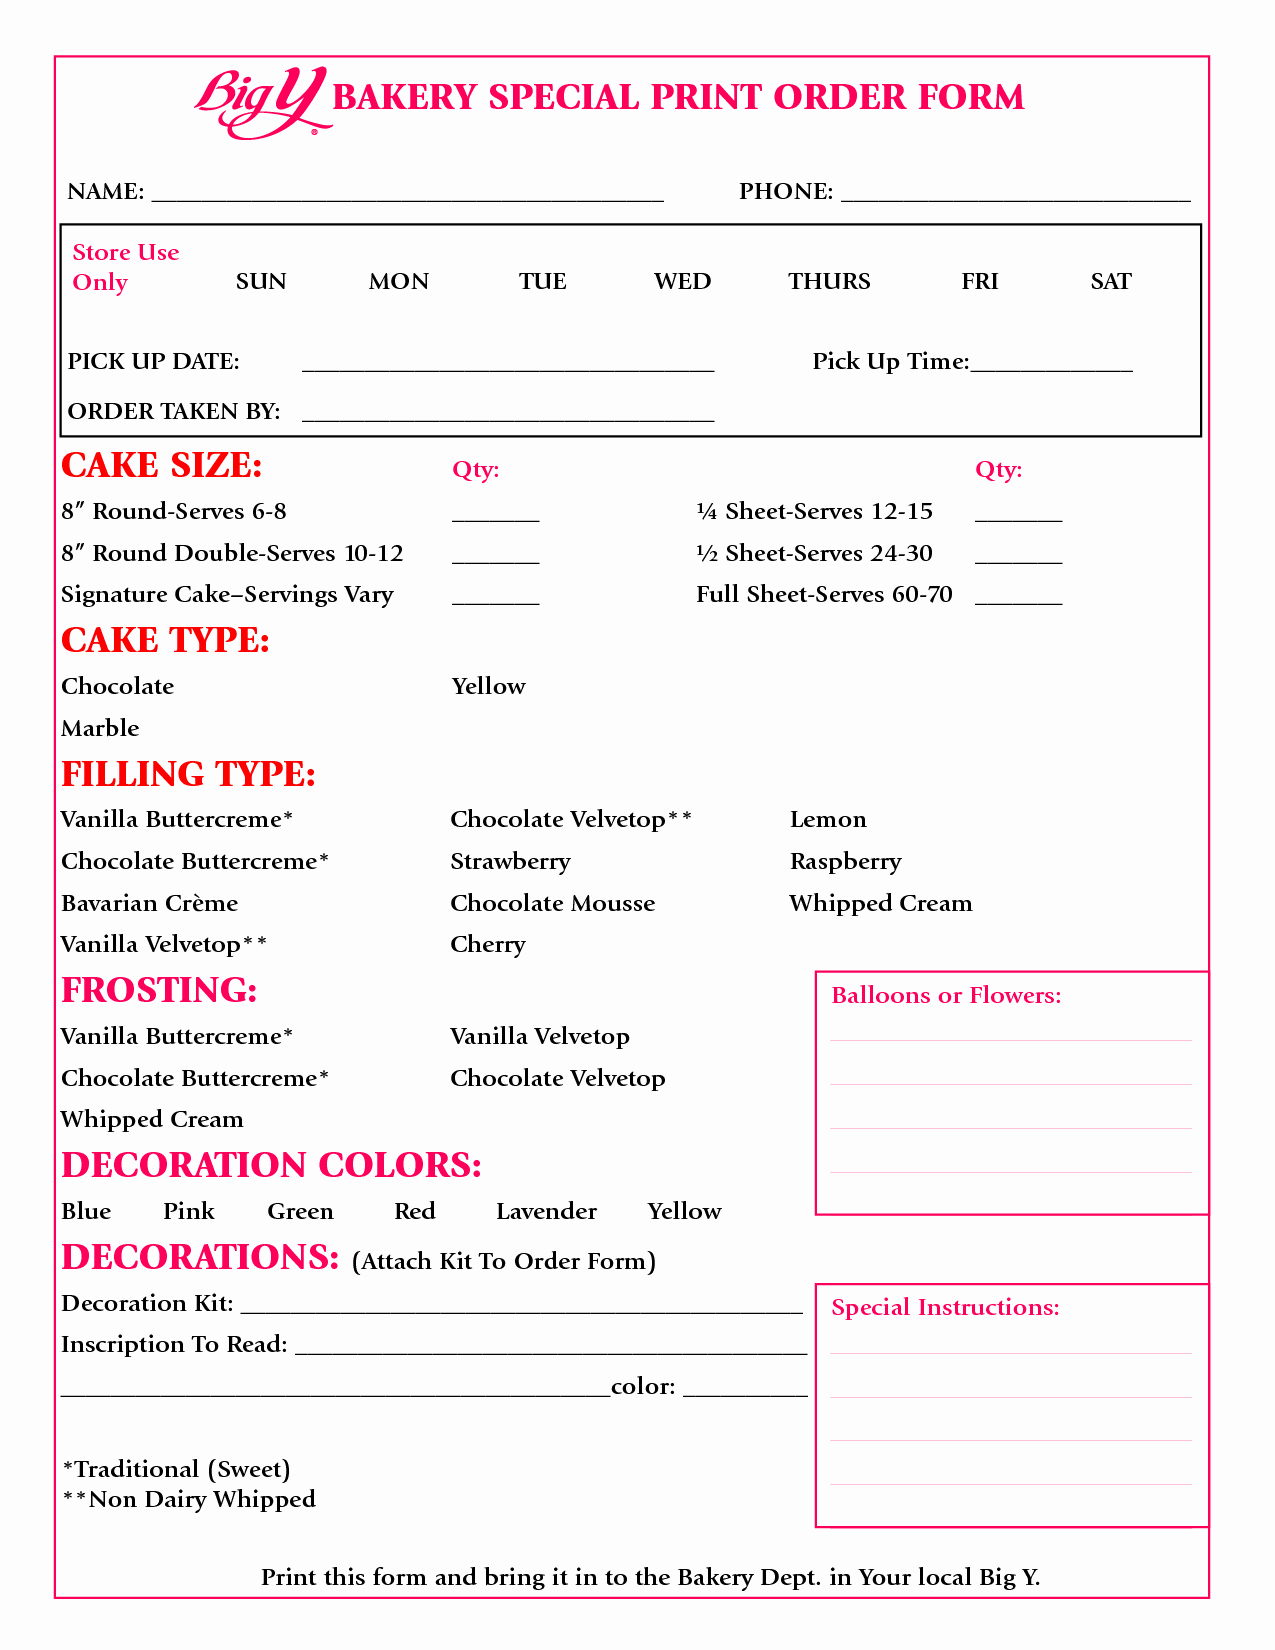 Cookie order form Template New Cake order form Google Search